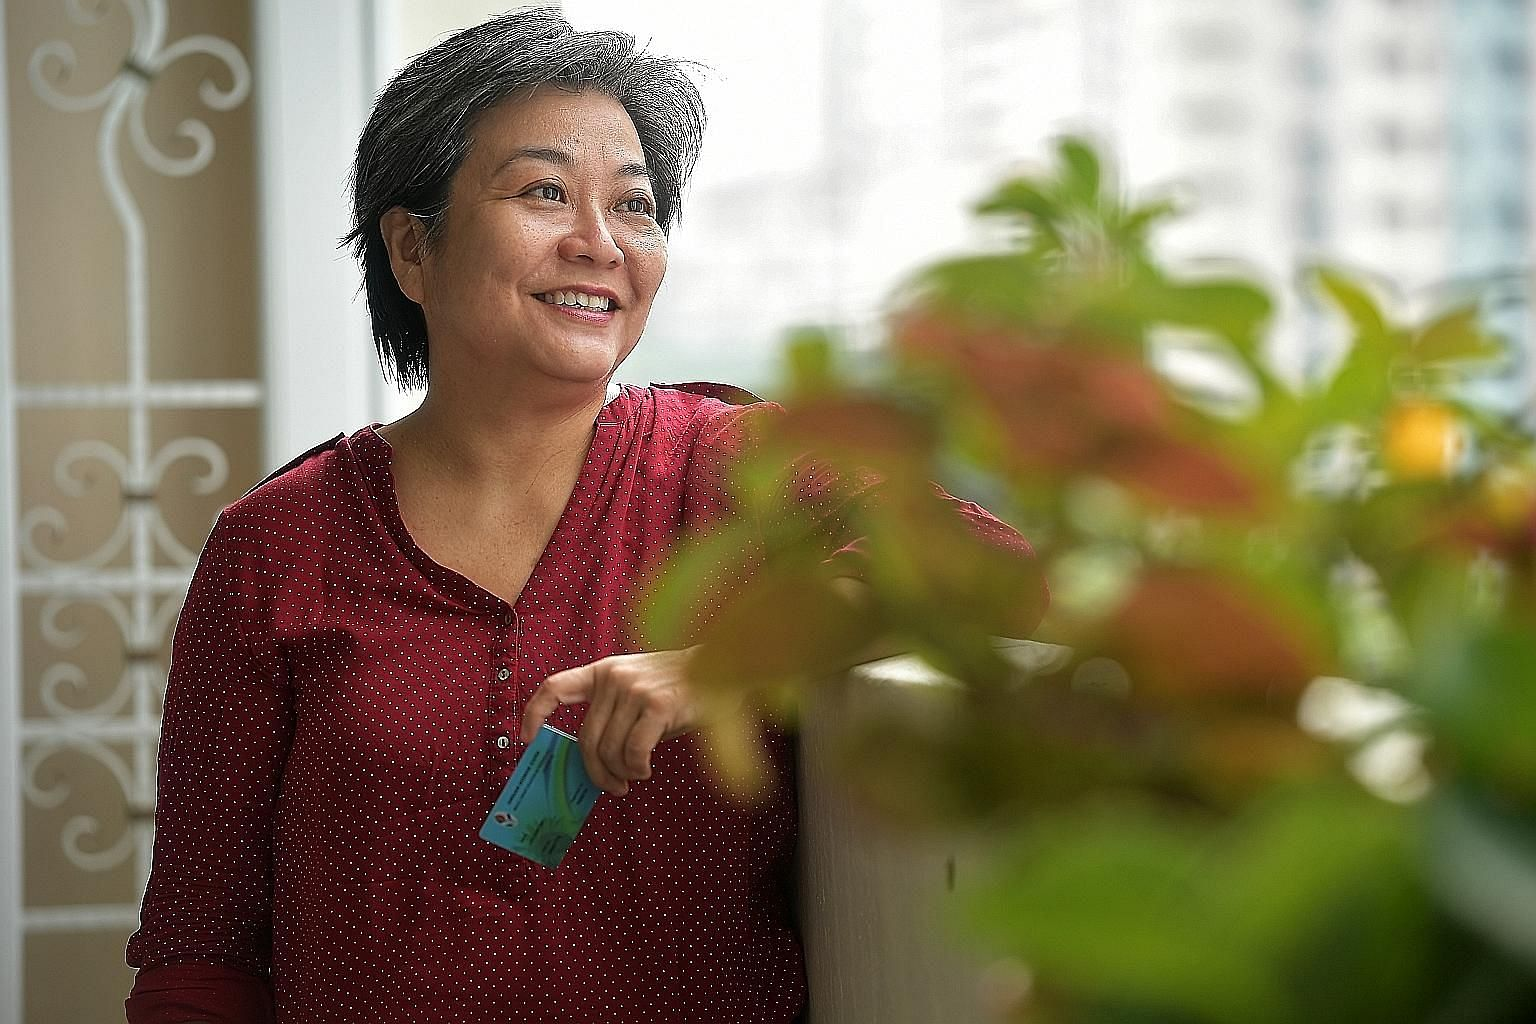 Ms Loh Siew Mei, 51, a retiree, is among the more than 500 people who pledged to donate their whole body under the Medical (Therapy, Education and Research) Act last year.